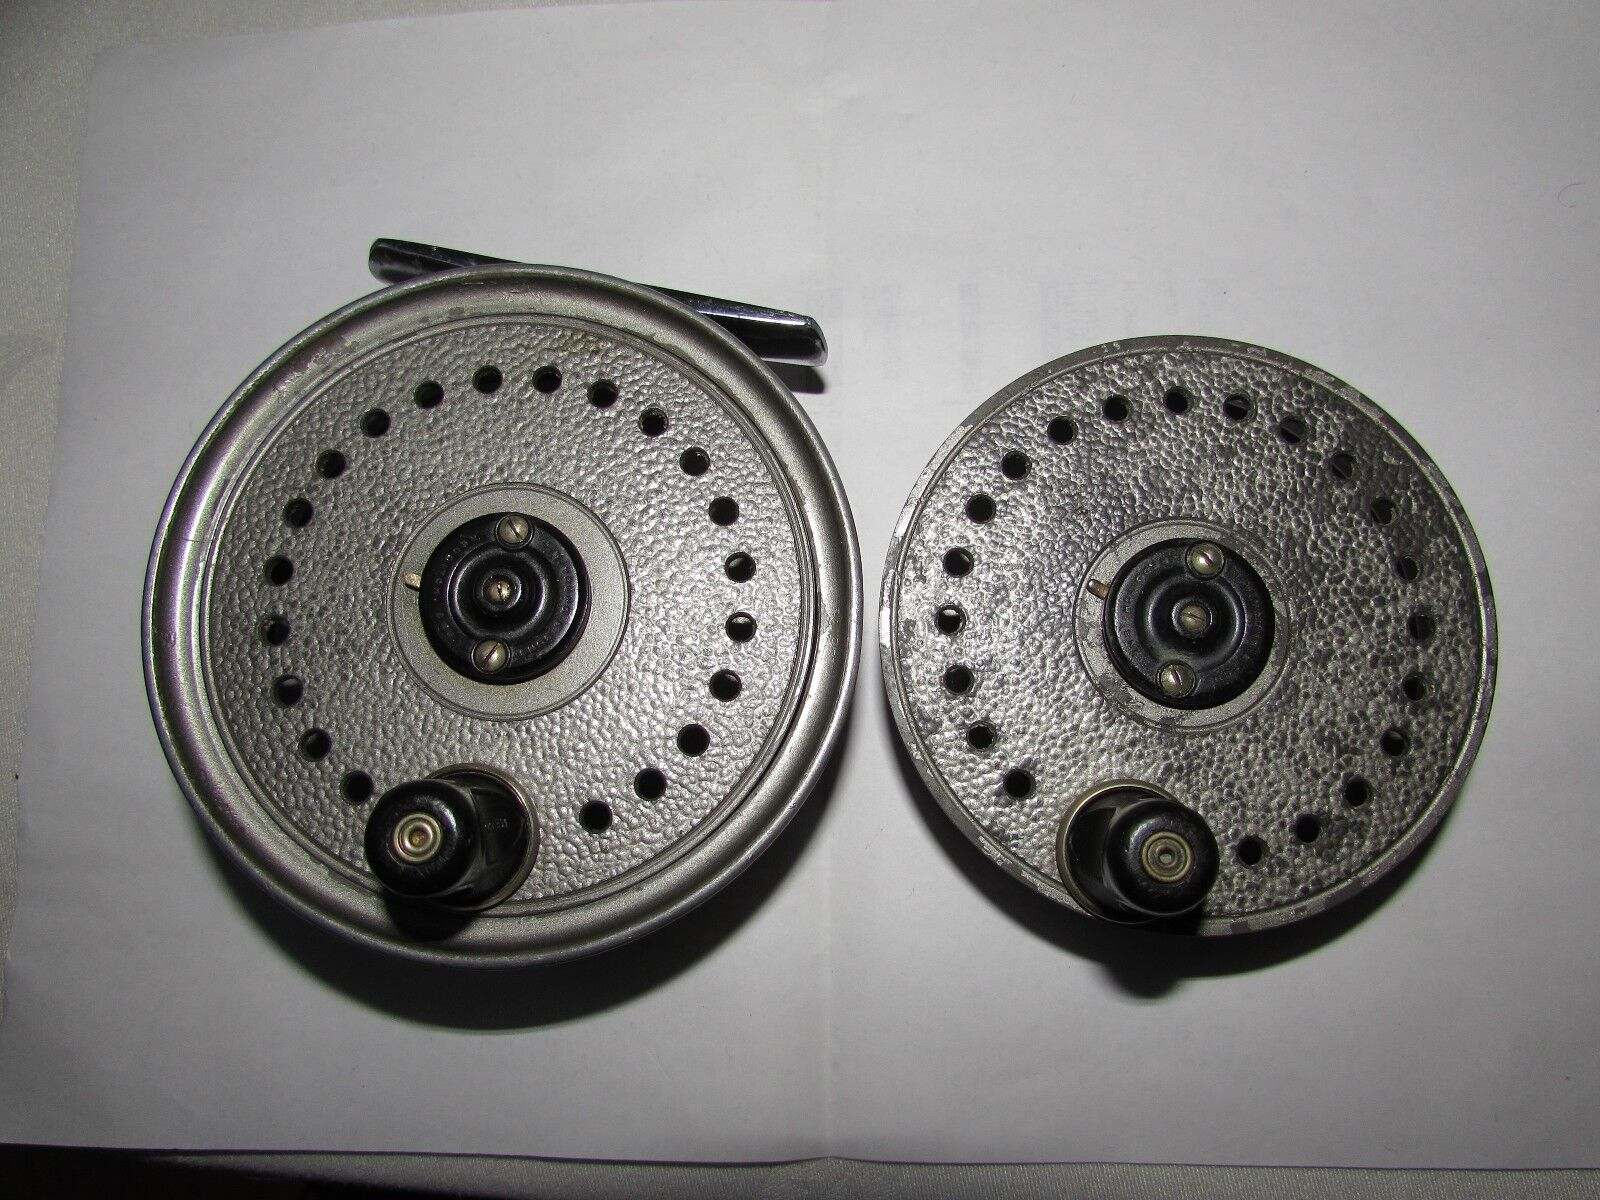 V good vintage youngs beaudex salmon fly fishing reel 4   + lineguard + spool  high quality & fast shipping